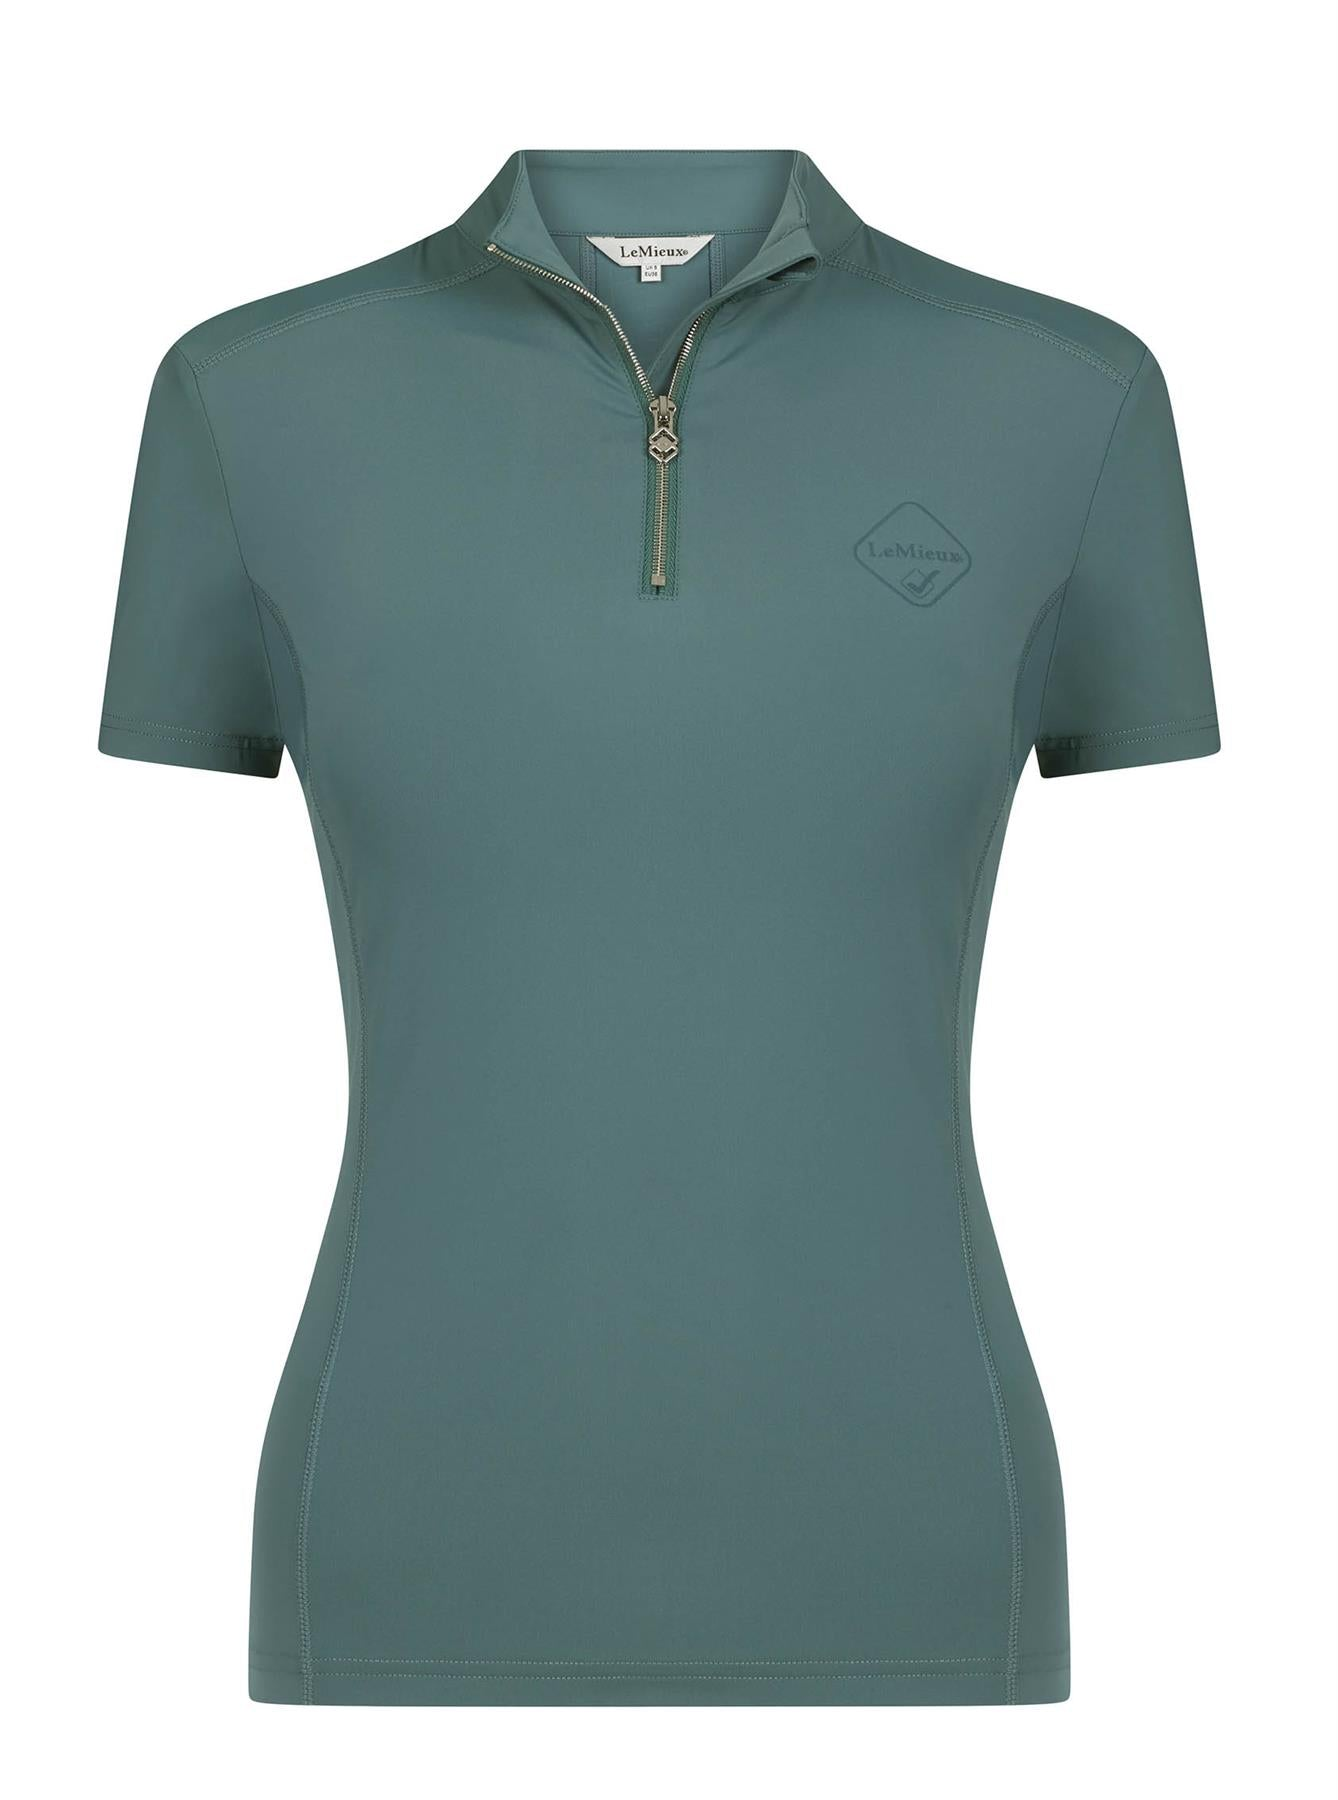 LeMieux Activewear Short Sleeve Base Layer